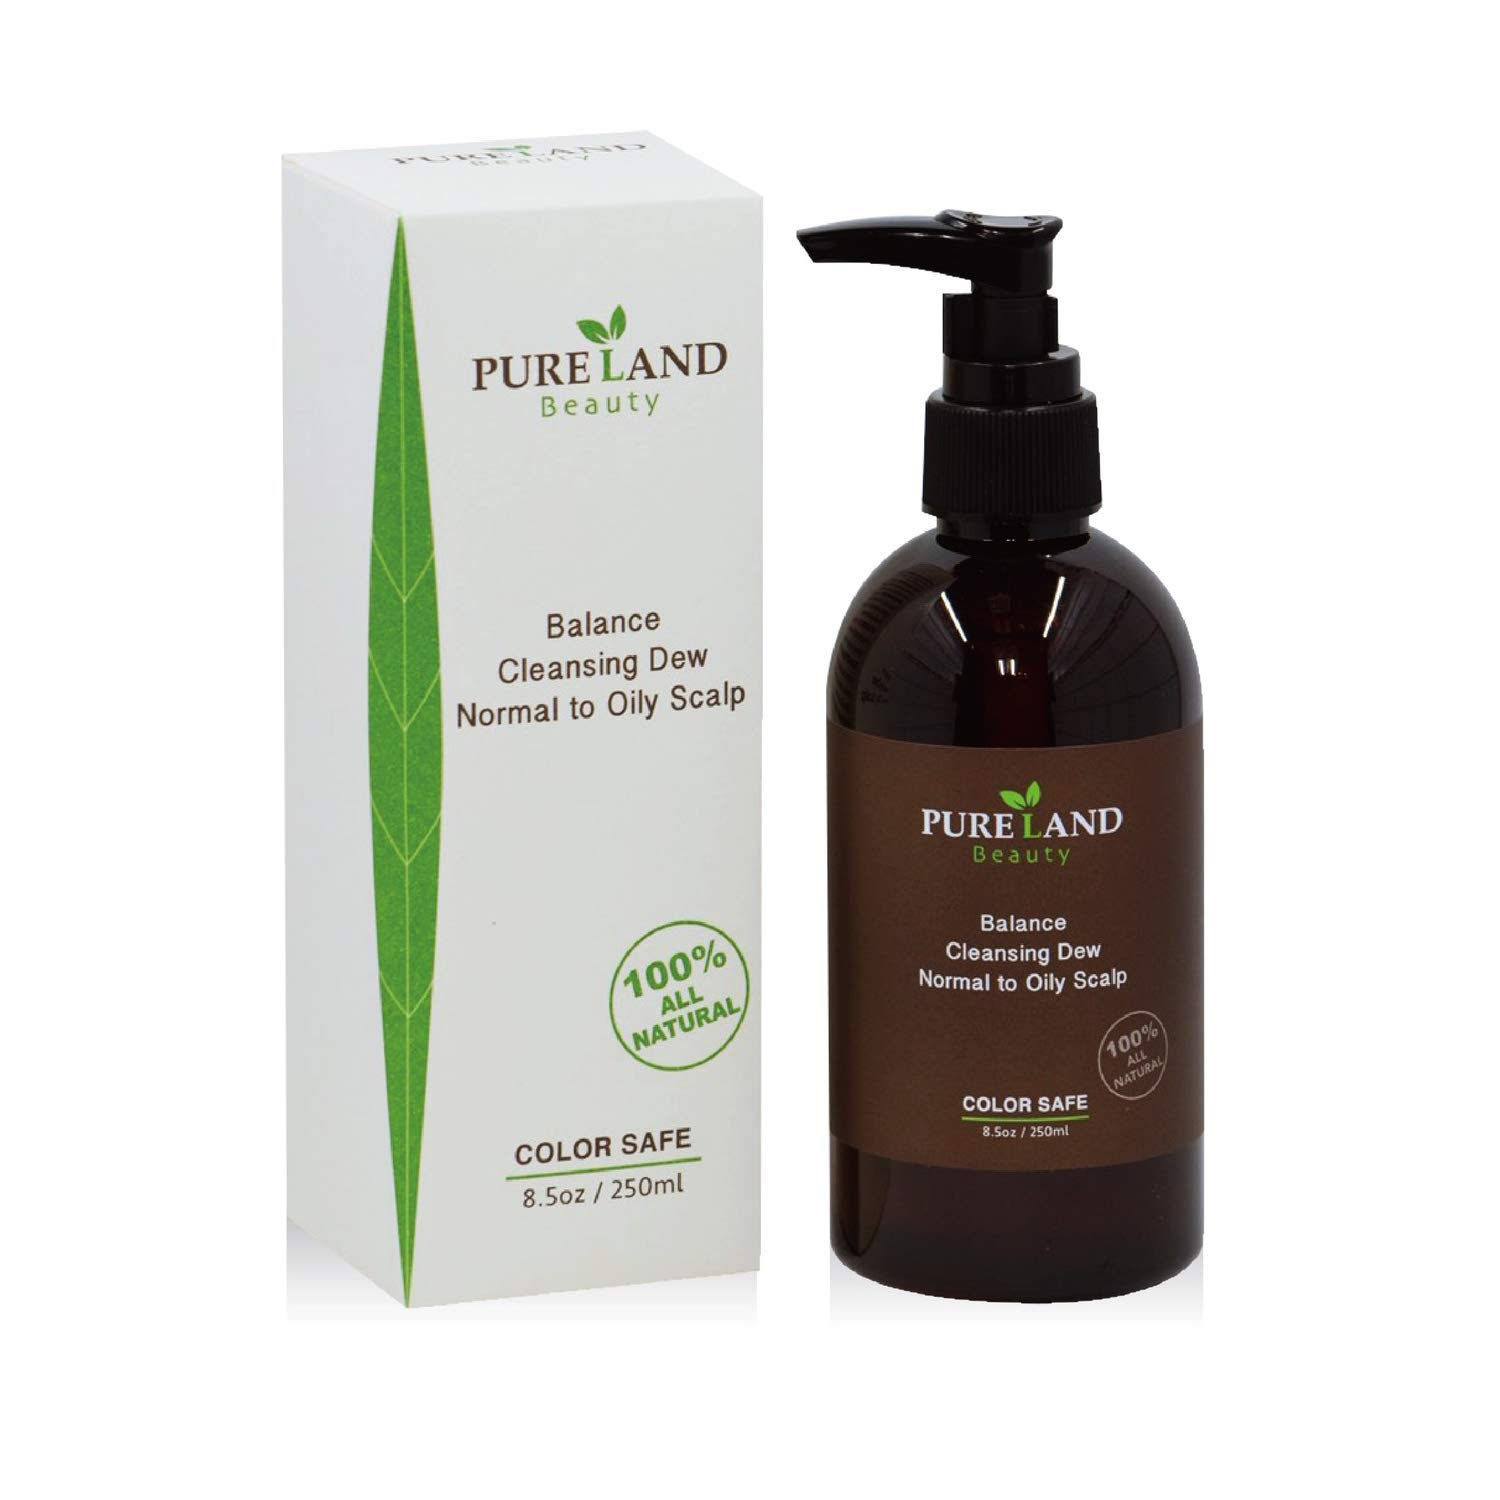 Pureland Beauty Balance Cleansing Dew, Save Your Scalp and Hair - 100% All Natural Hair Shampoo for Normal to Oily Scalp - Provide Your Hair Healthy Growth - 8.5 oz.…